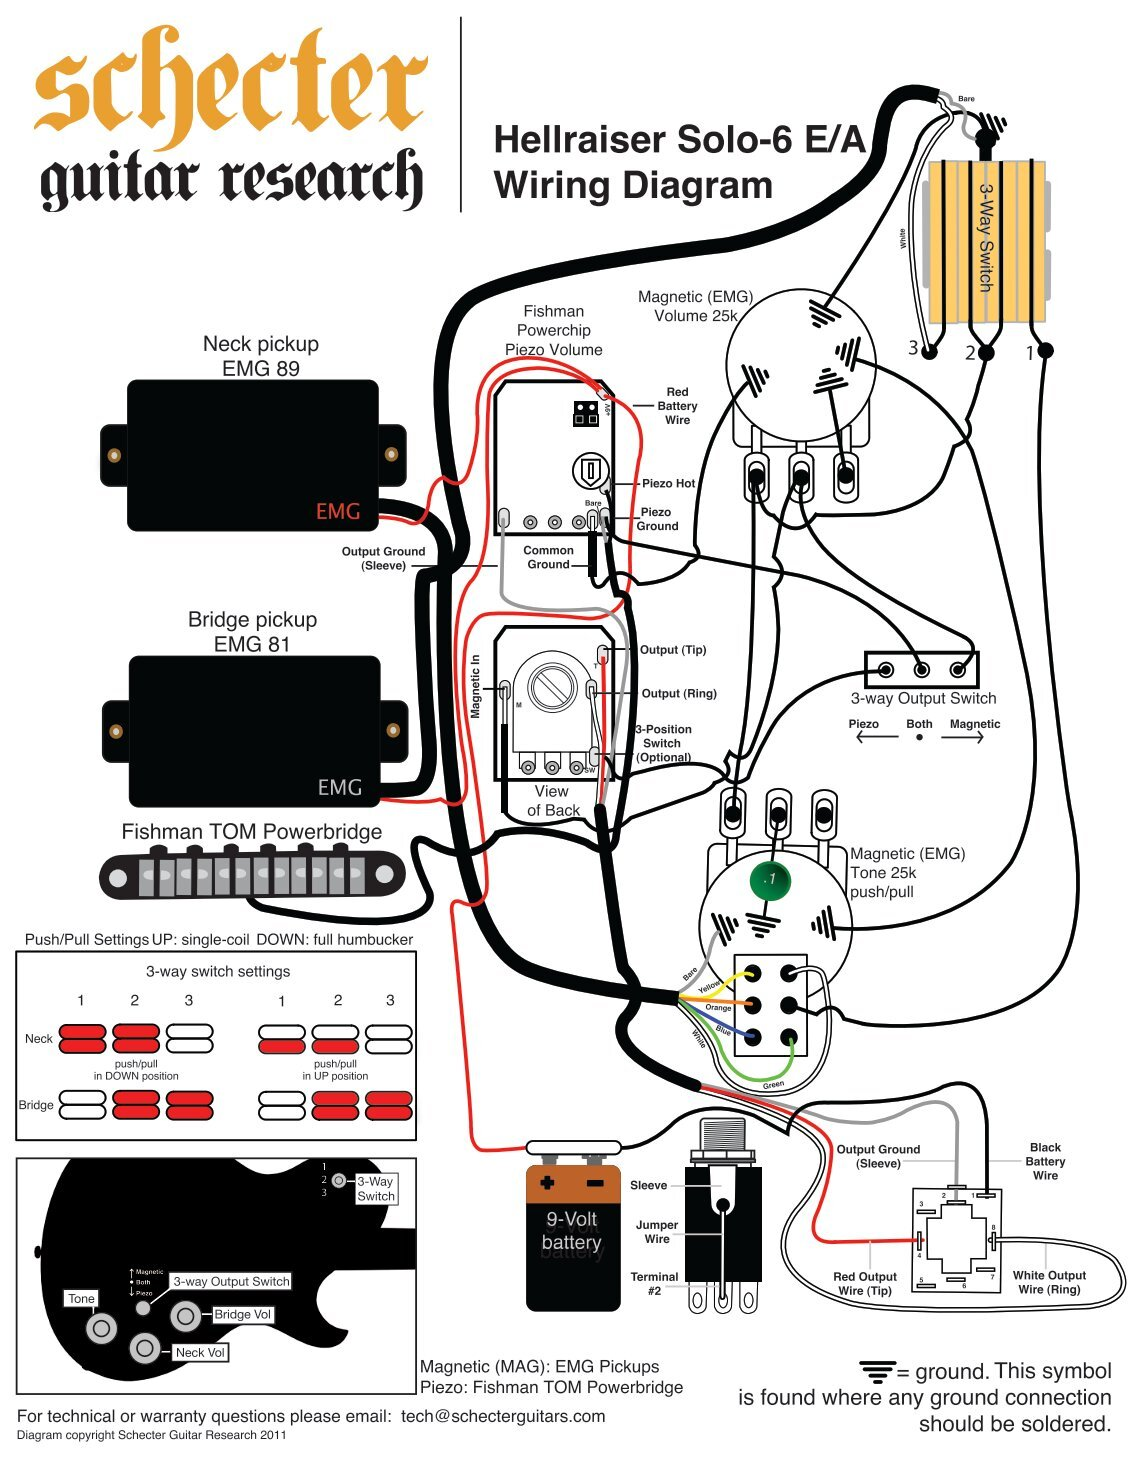 hellraiser solo 6 wiring diagram schecter guitars?quality\\\\\\\\\\\\\\\\\\\\\\\\\\\\\\\=85 emg hz wiring diagram color emg hz passive wiring diagram \u2022 205 ufc co select by emg wiring diagram at bayanpartner.co